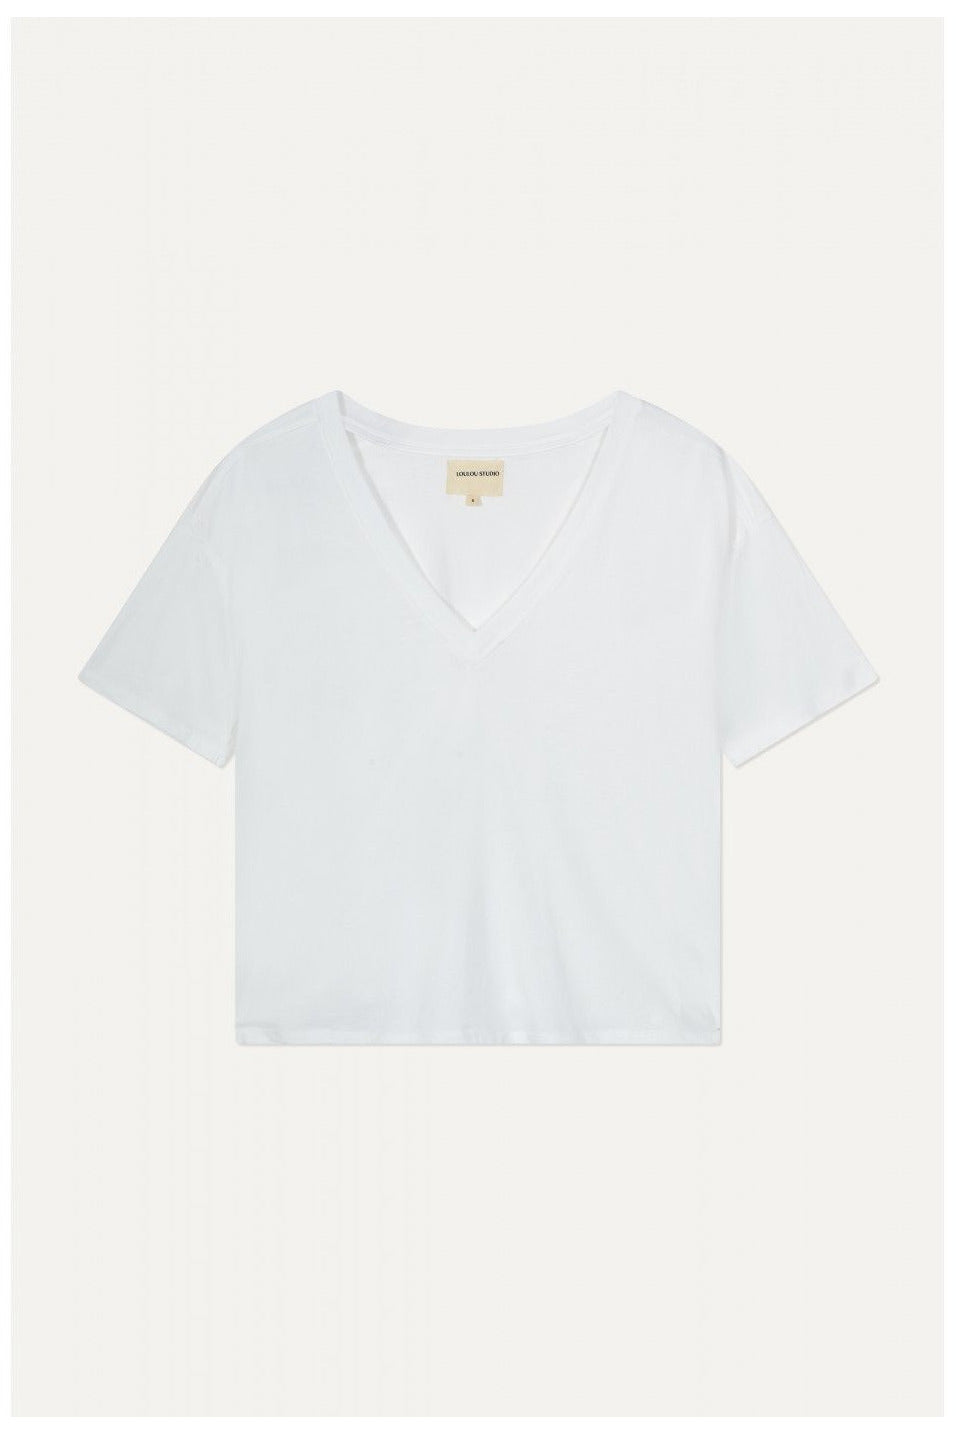 FAAA V NECK T-SHIRT WHITE BY LOULOU STUDIO - BEYOND STUDIOS